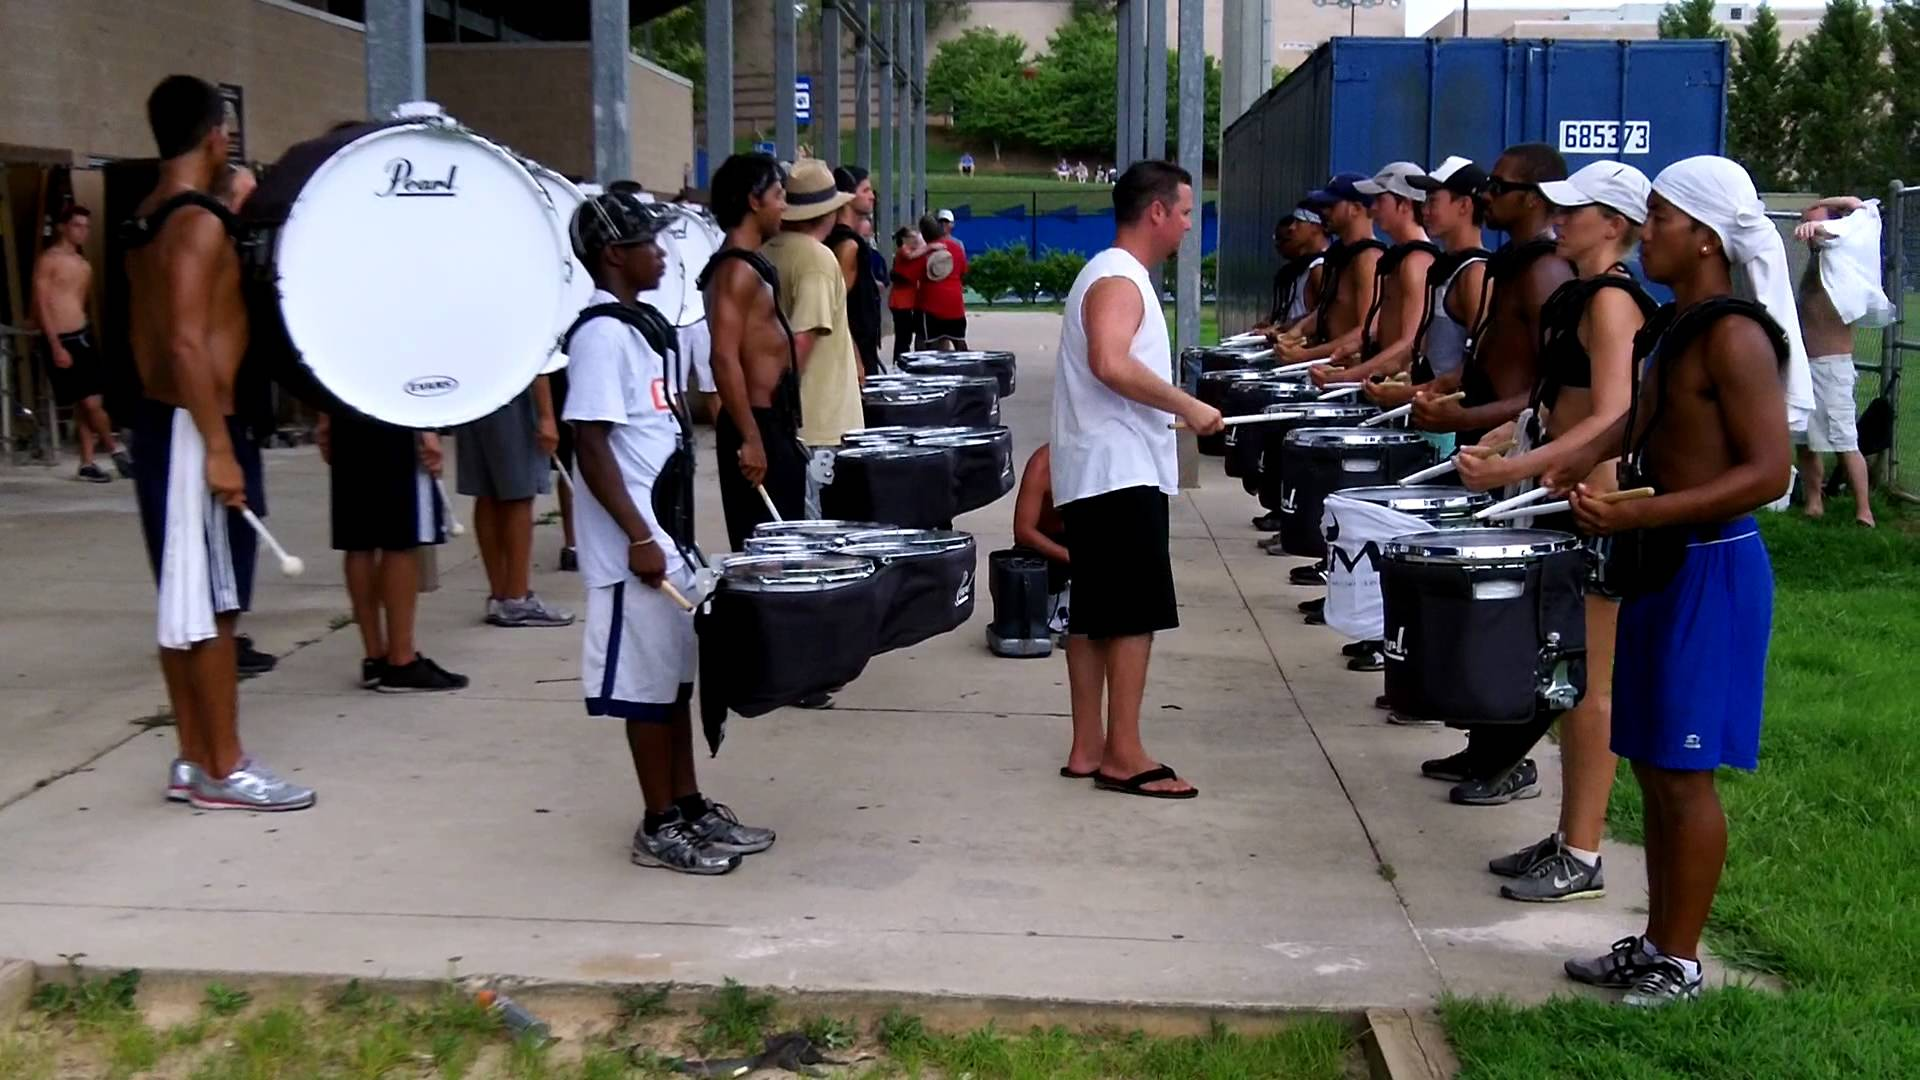 Blue Devils Drum Line 2011 – Solo Run Through the Snare Break ATL